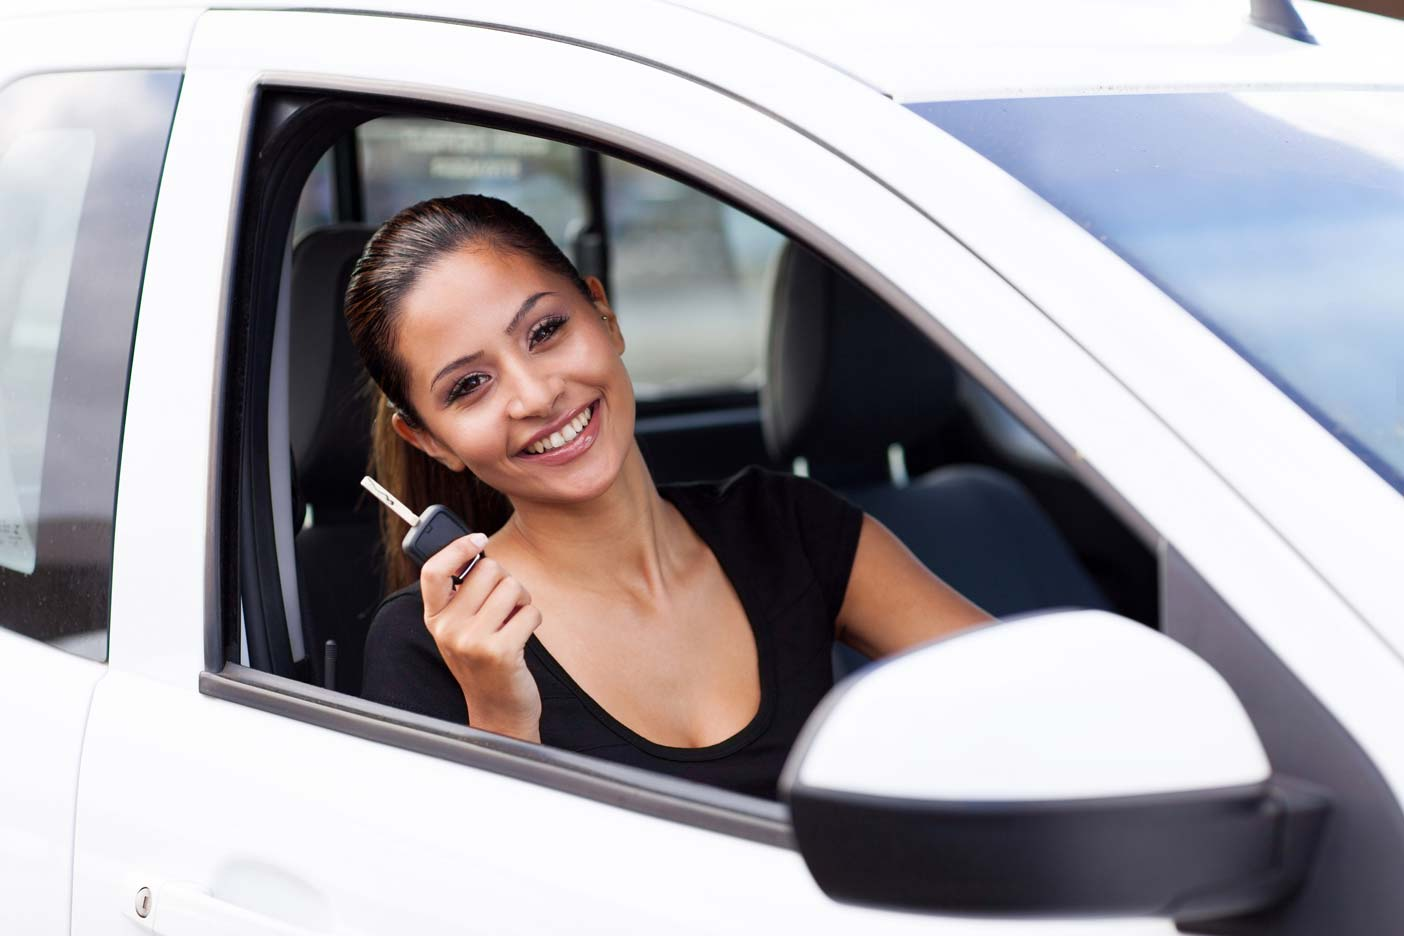 Happy woman in driving seat of car